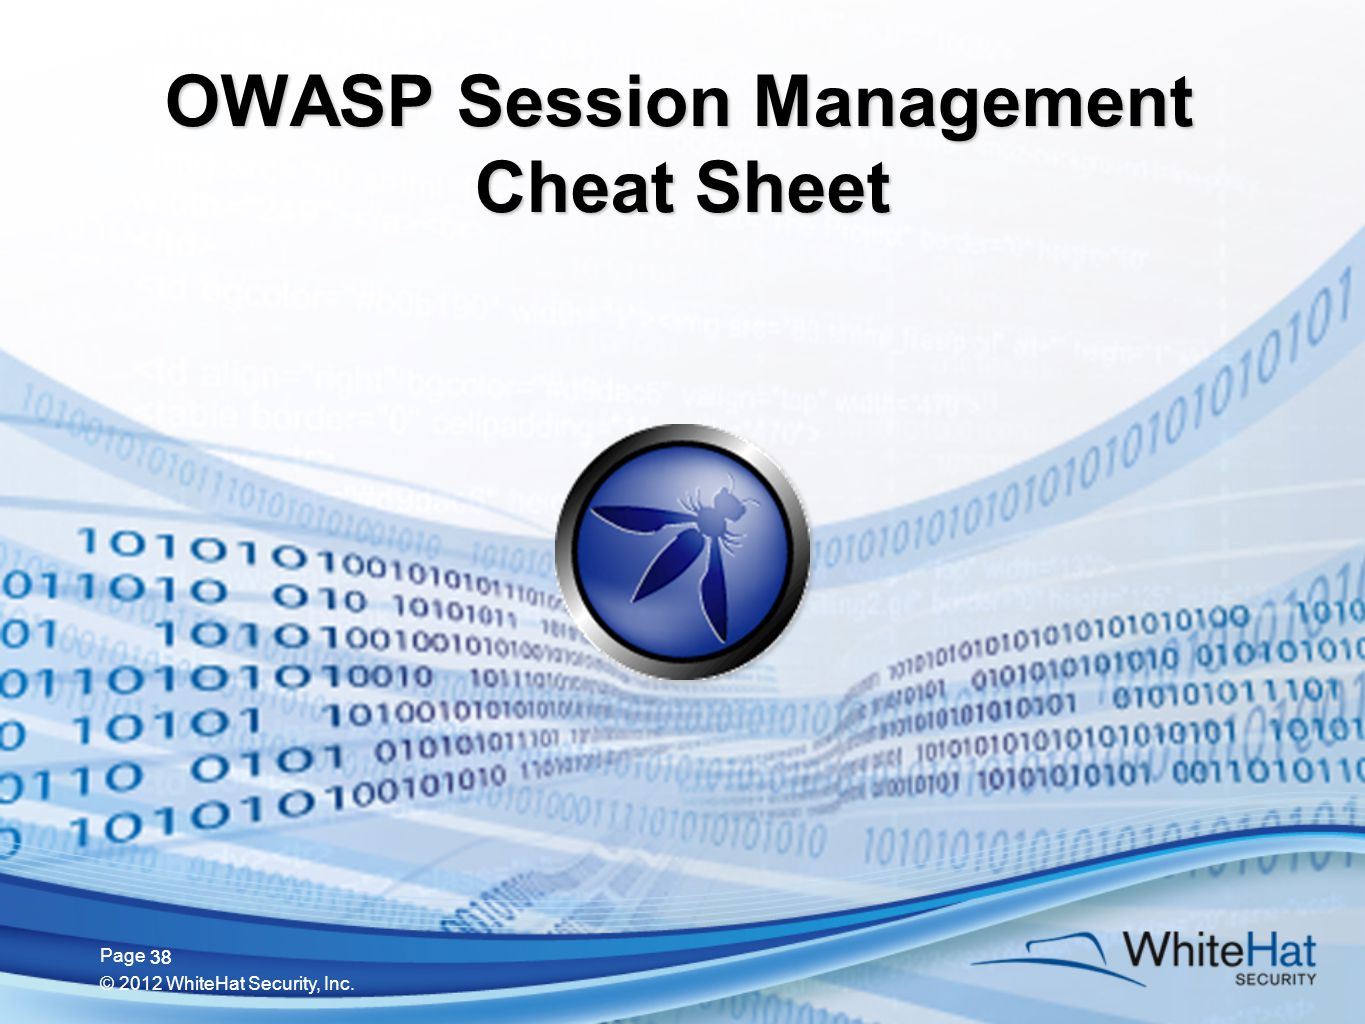 38 Page © 2012 WhiteHat Security, Inc. 38 OWASP Session Management Cheat Sheet